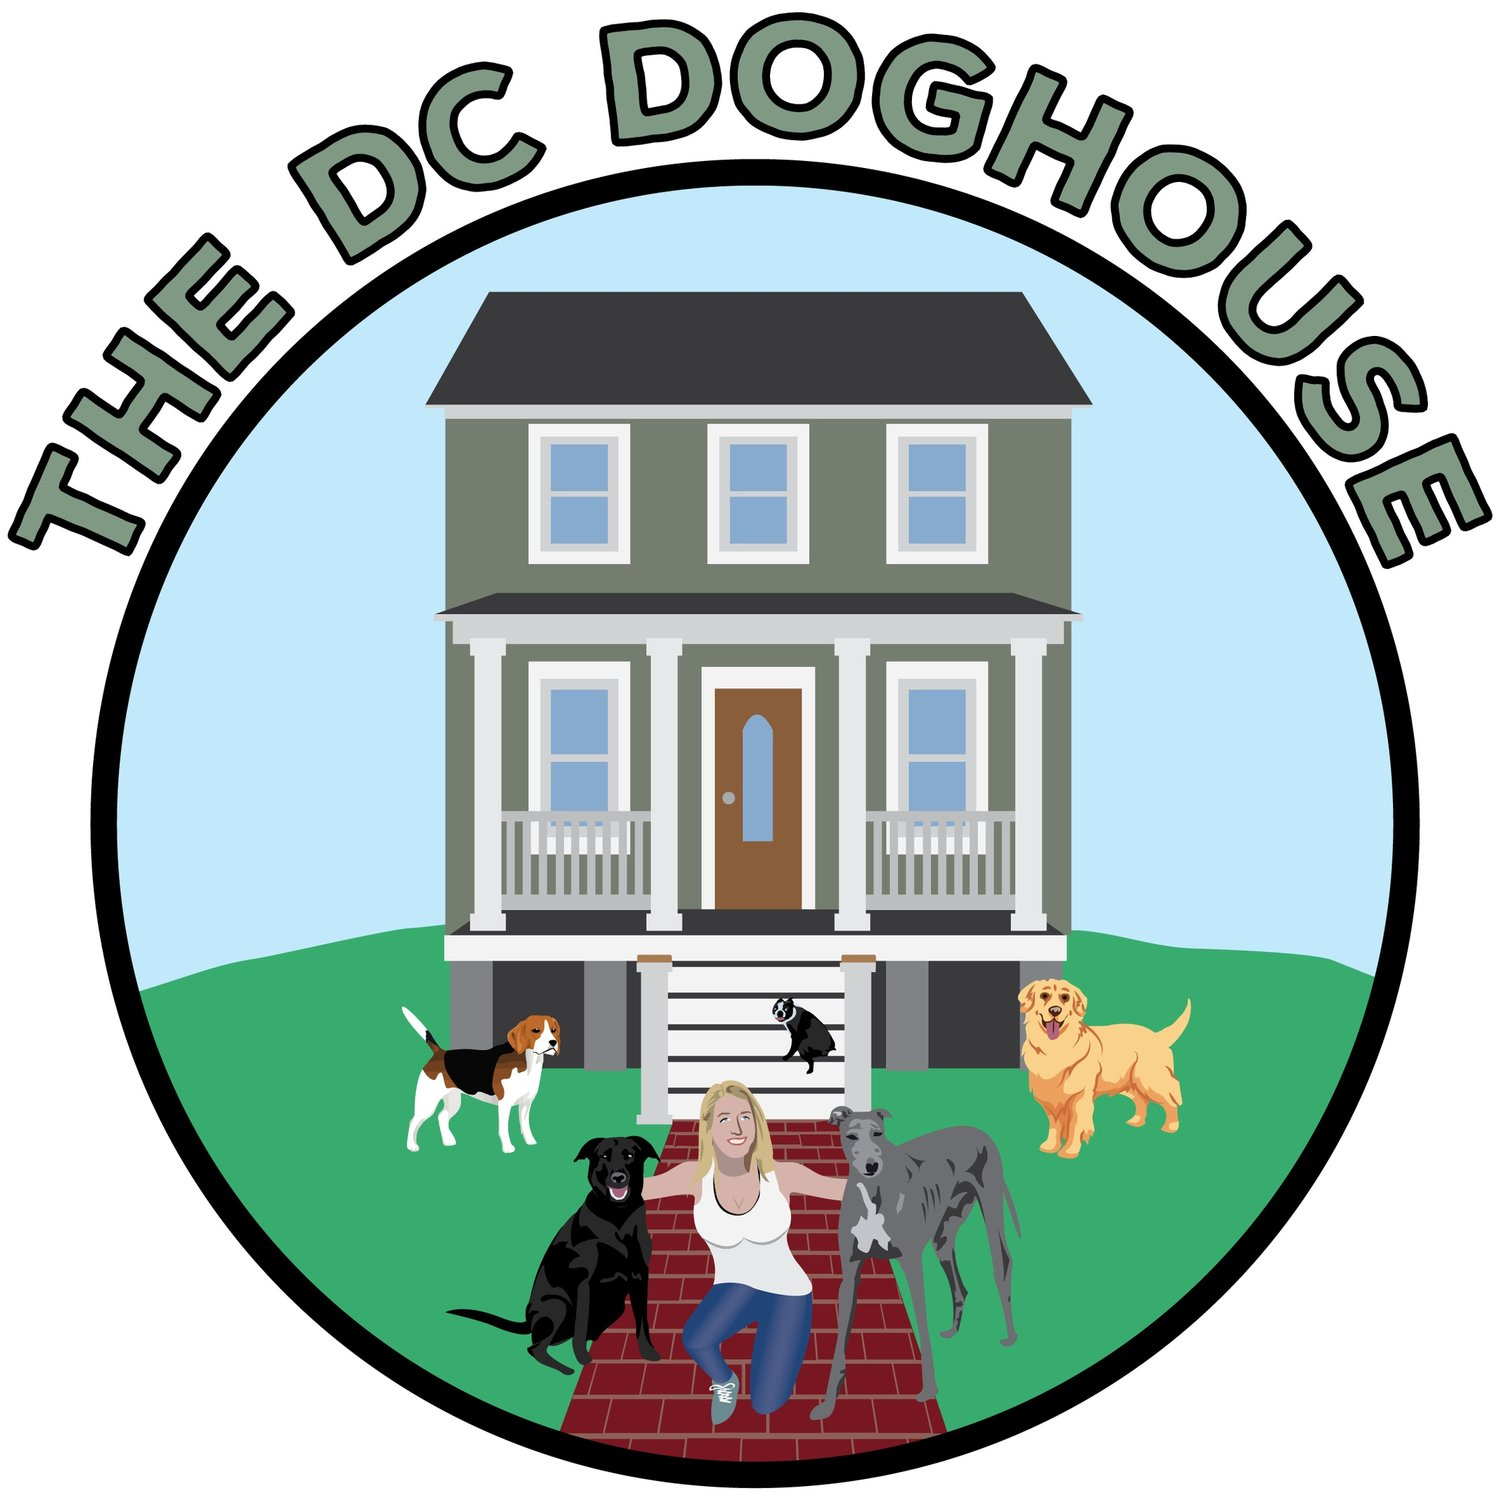 DC DOGHOUSE